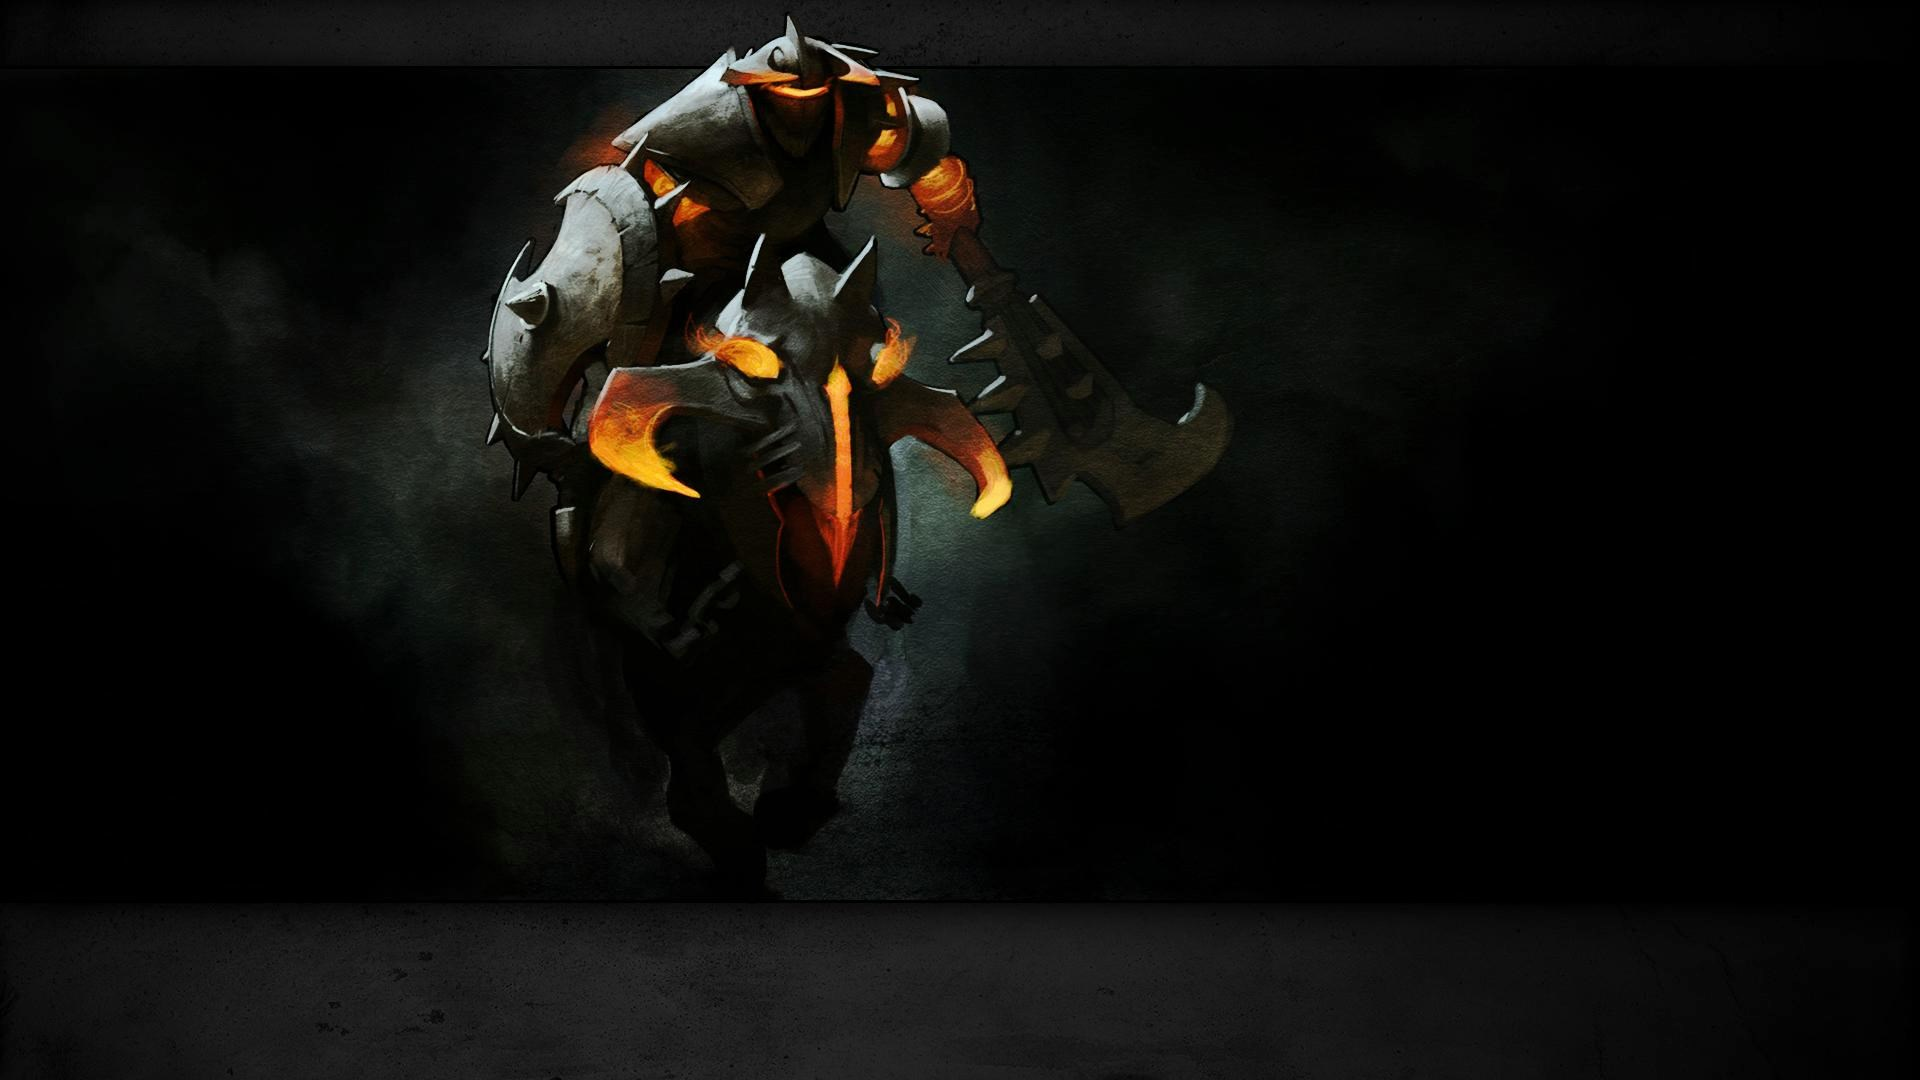 dota-pack-1080p-hd-1920x1080-kB-wallpaper-wpc5804235